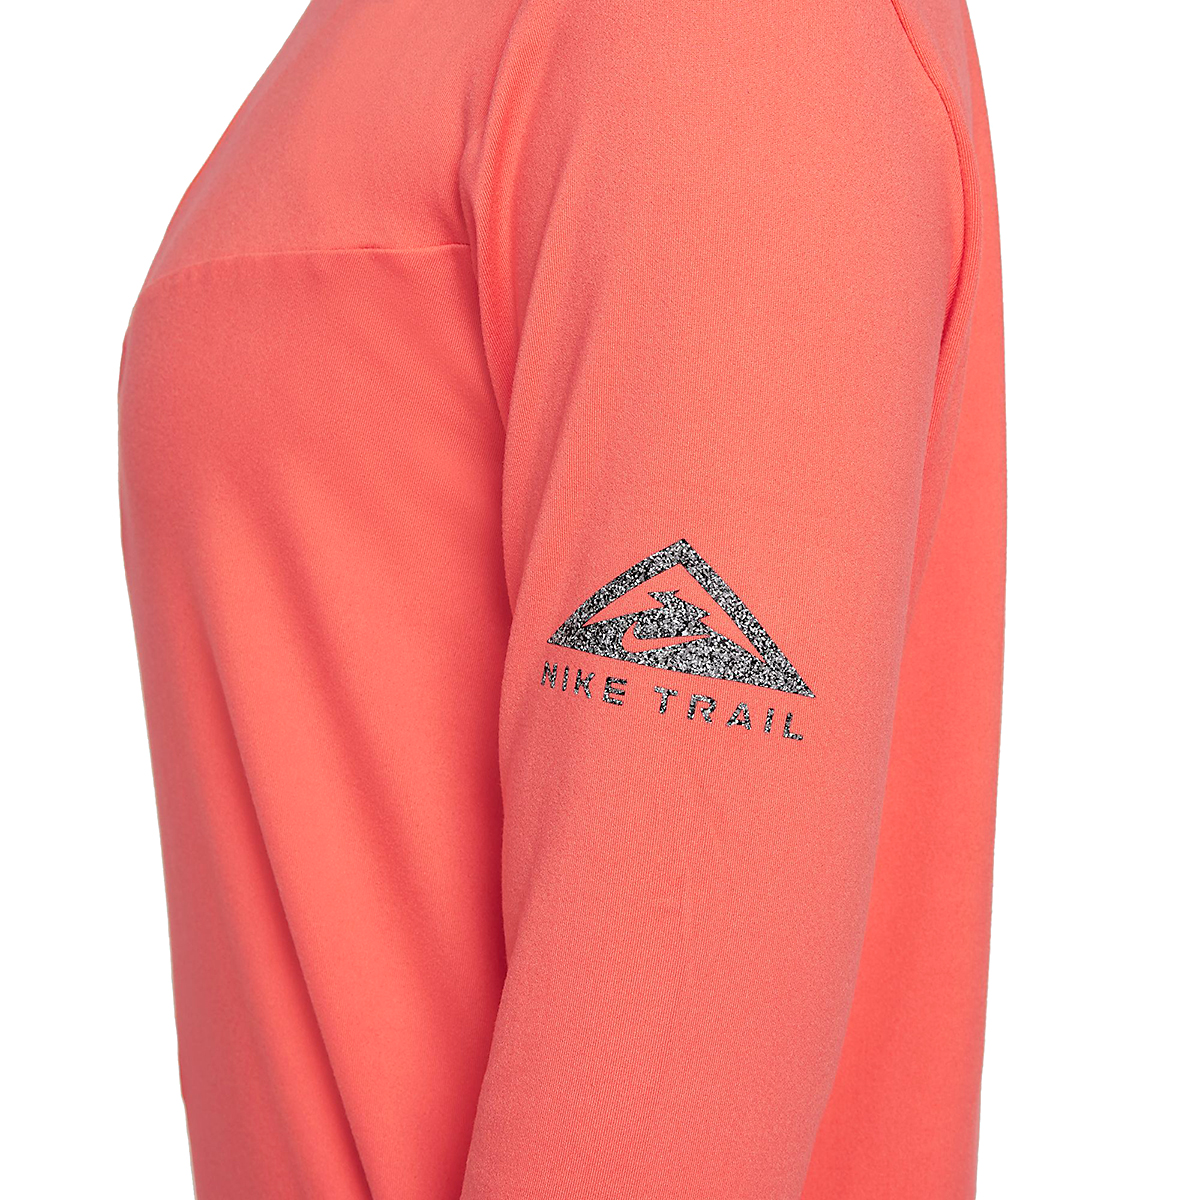 Women's Nike Element Trail Running Midlayer - Color: Magic Ember/Reflective Silver - Size: XS, Magic Ember/Reflective Silver, large, image 4